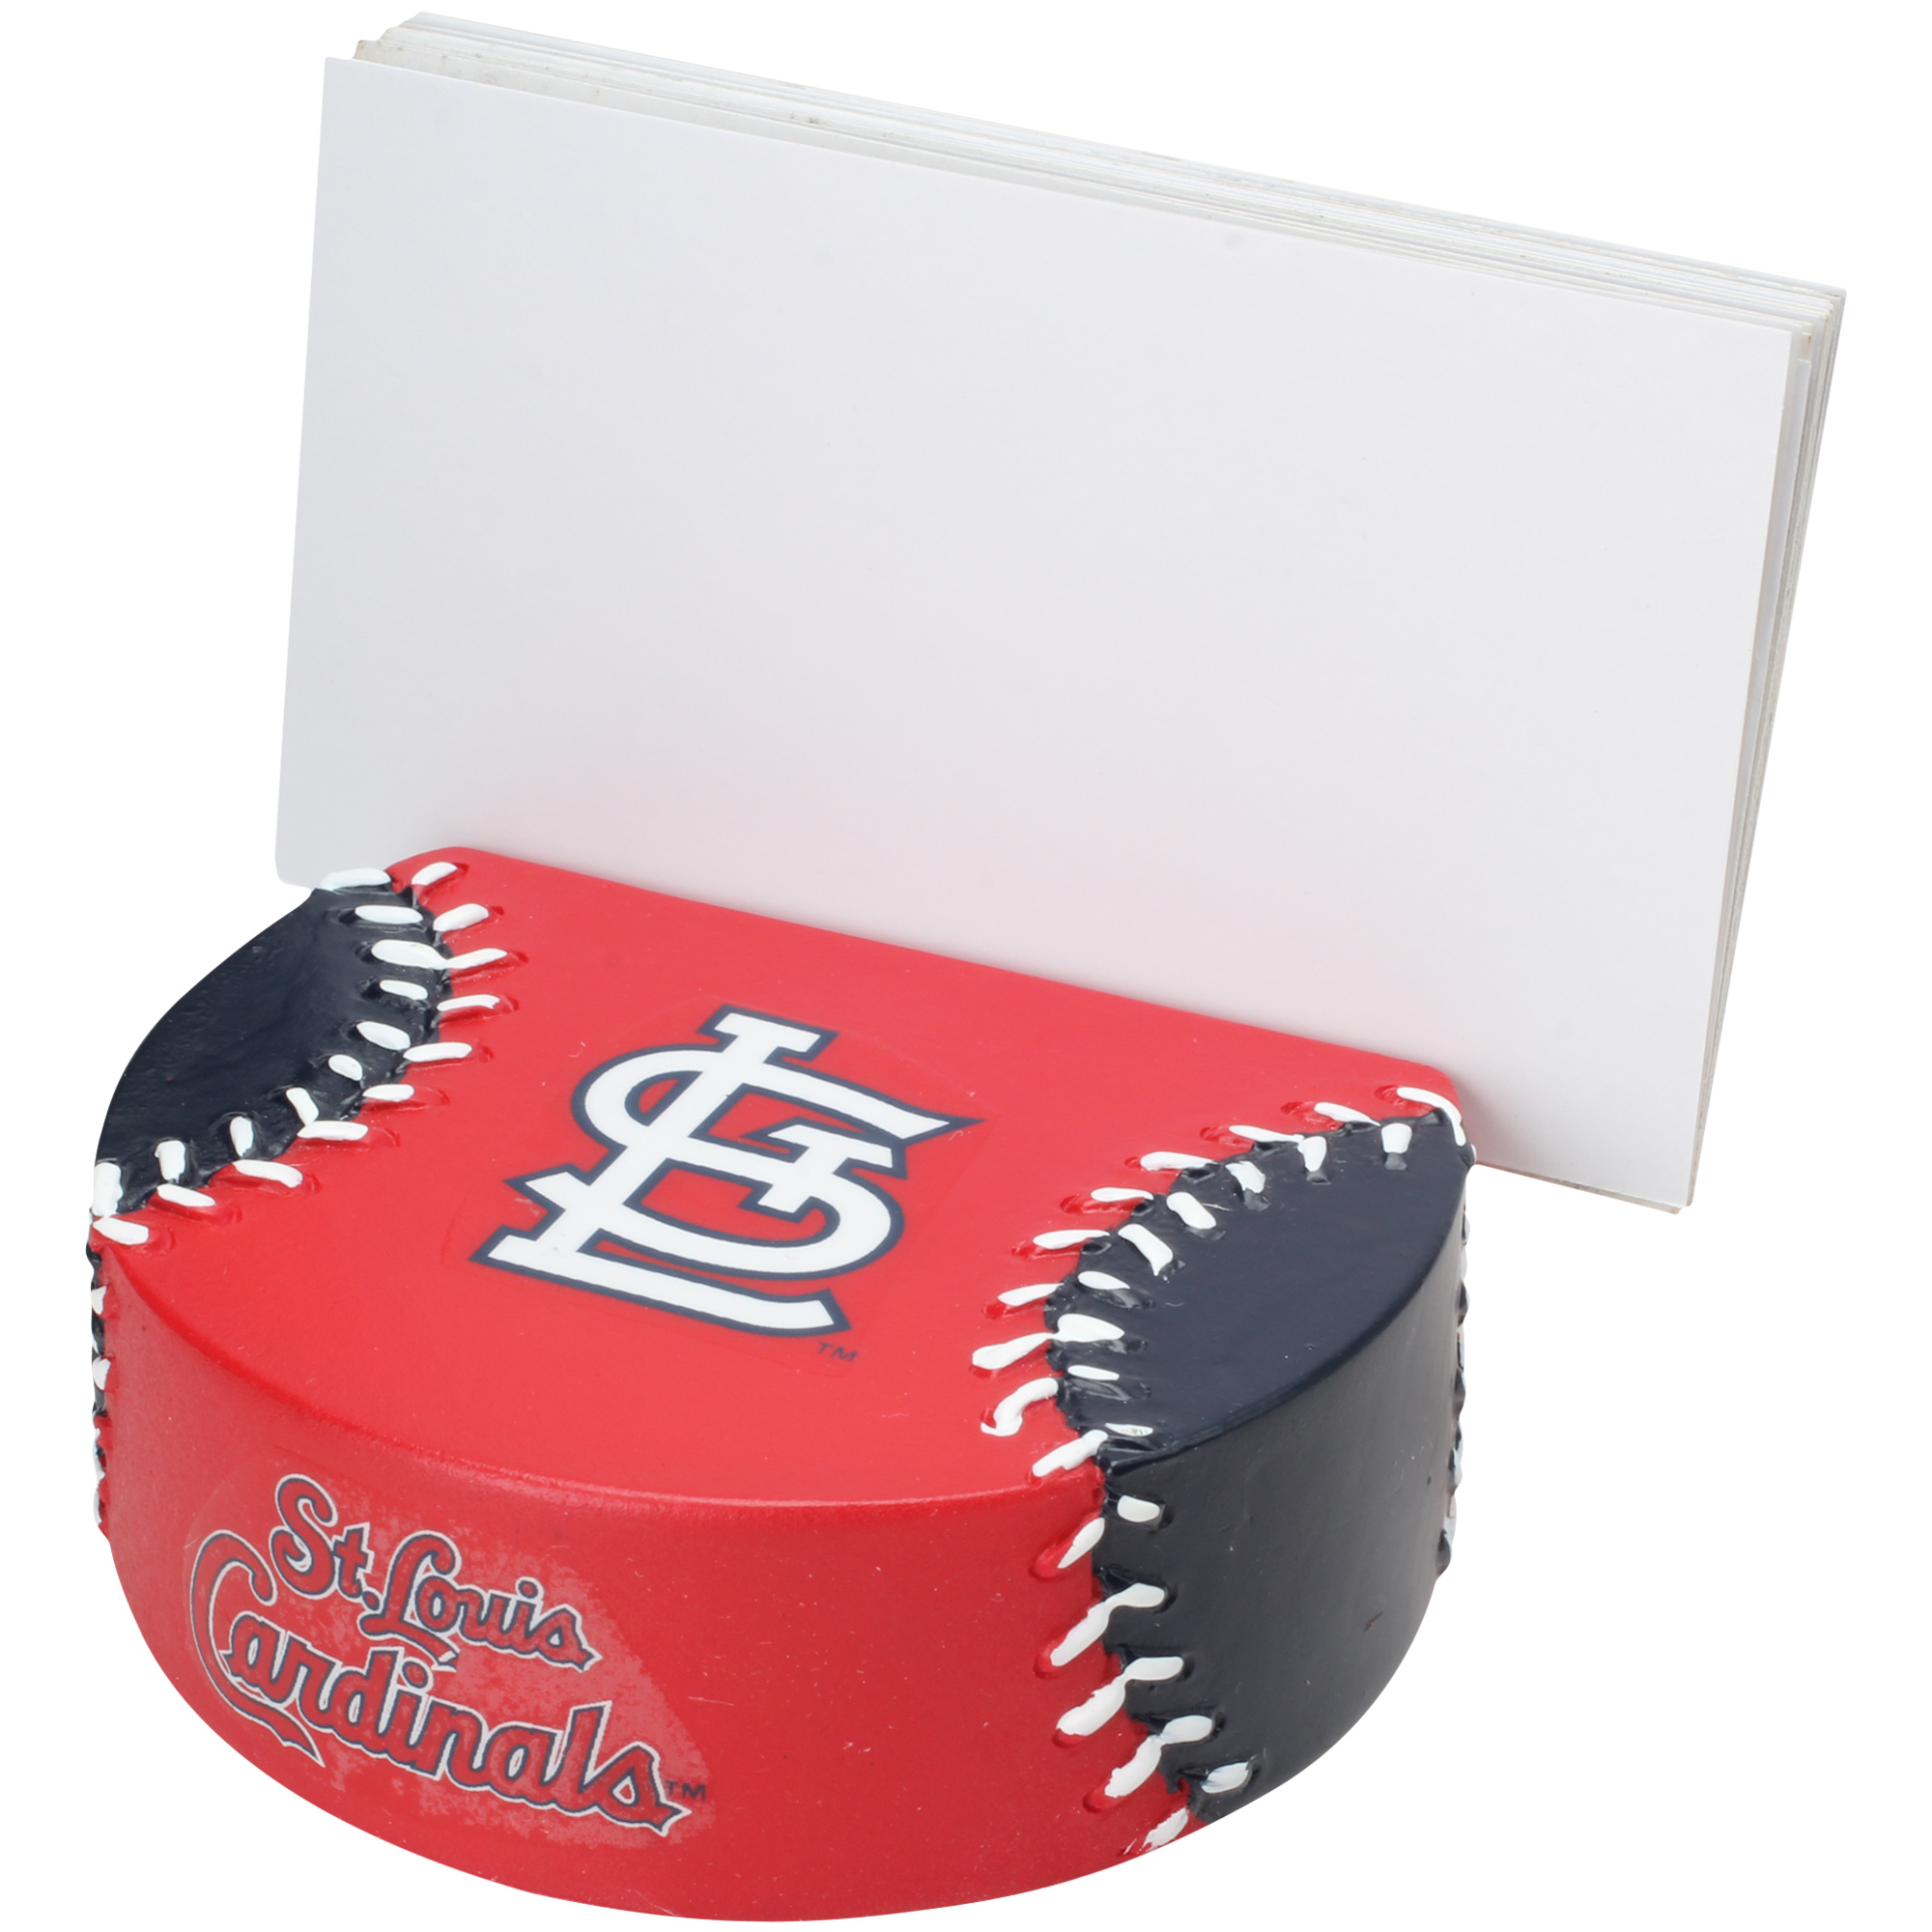 St. Louis Cardinals Card Holder - No Size